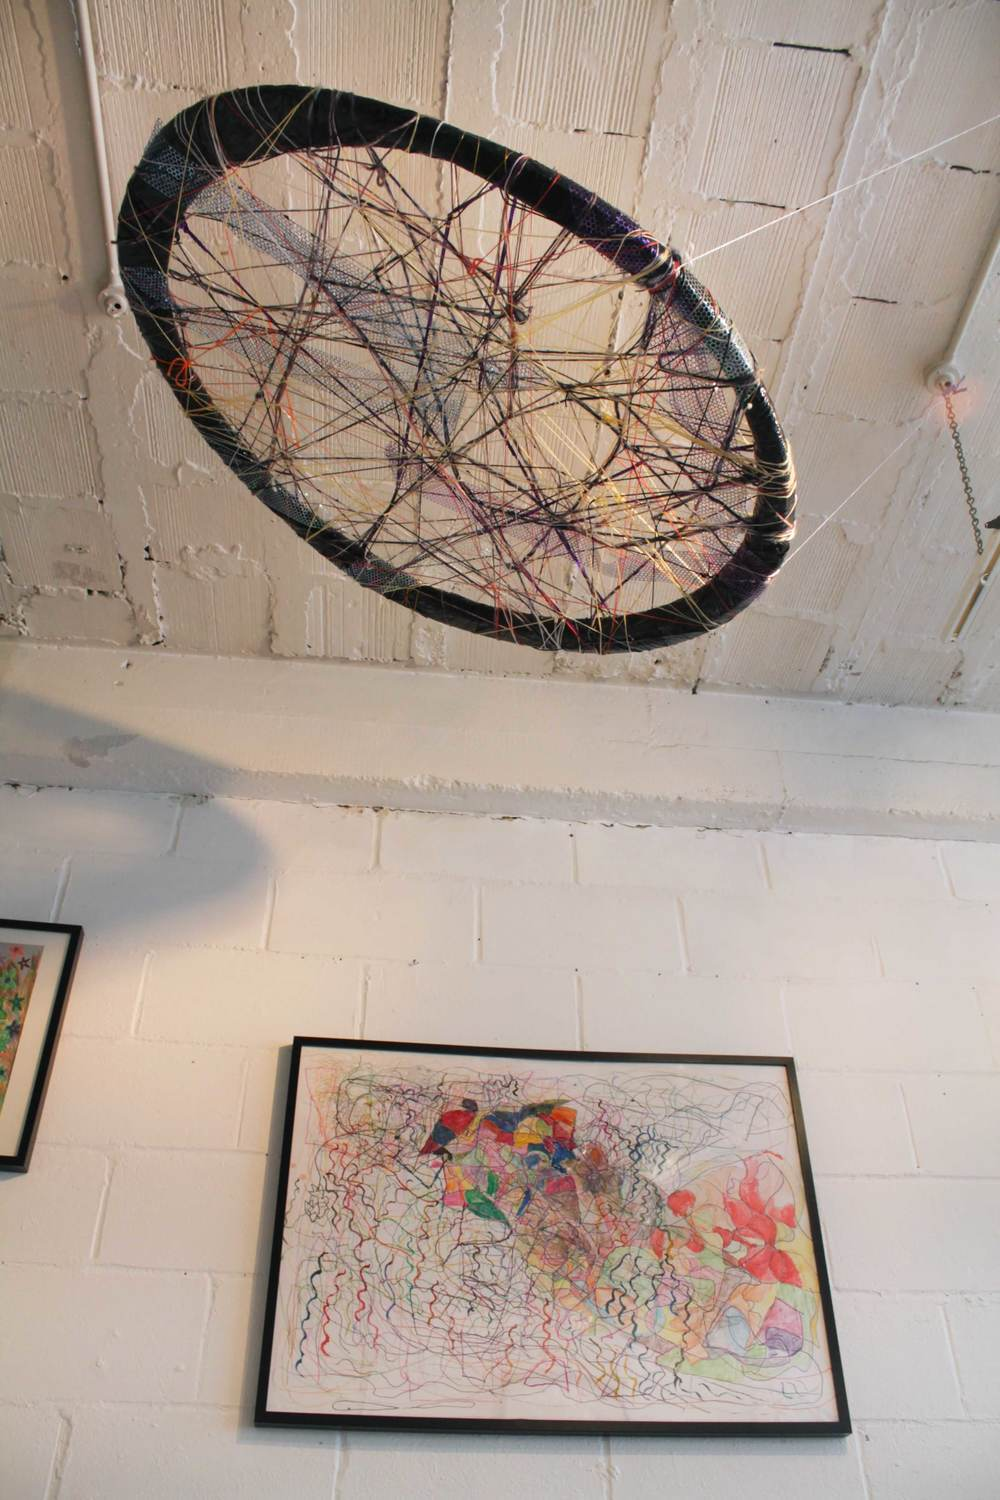 ActionSpace Cockpit arts Open exhibition